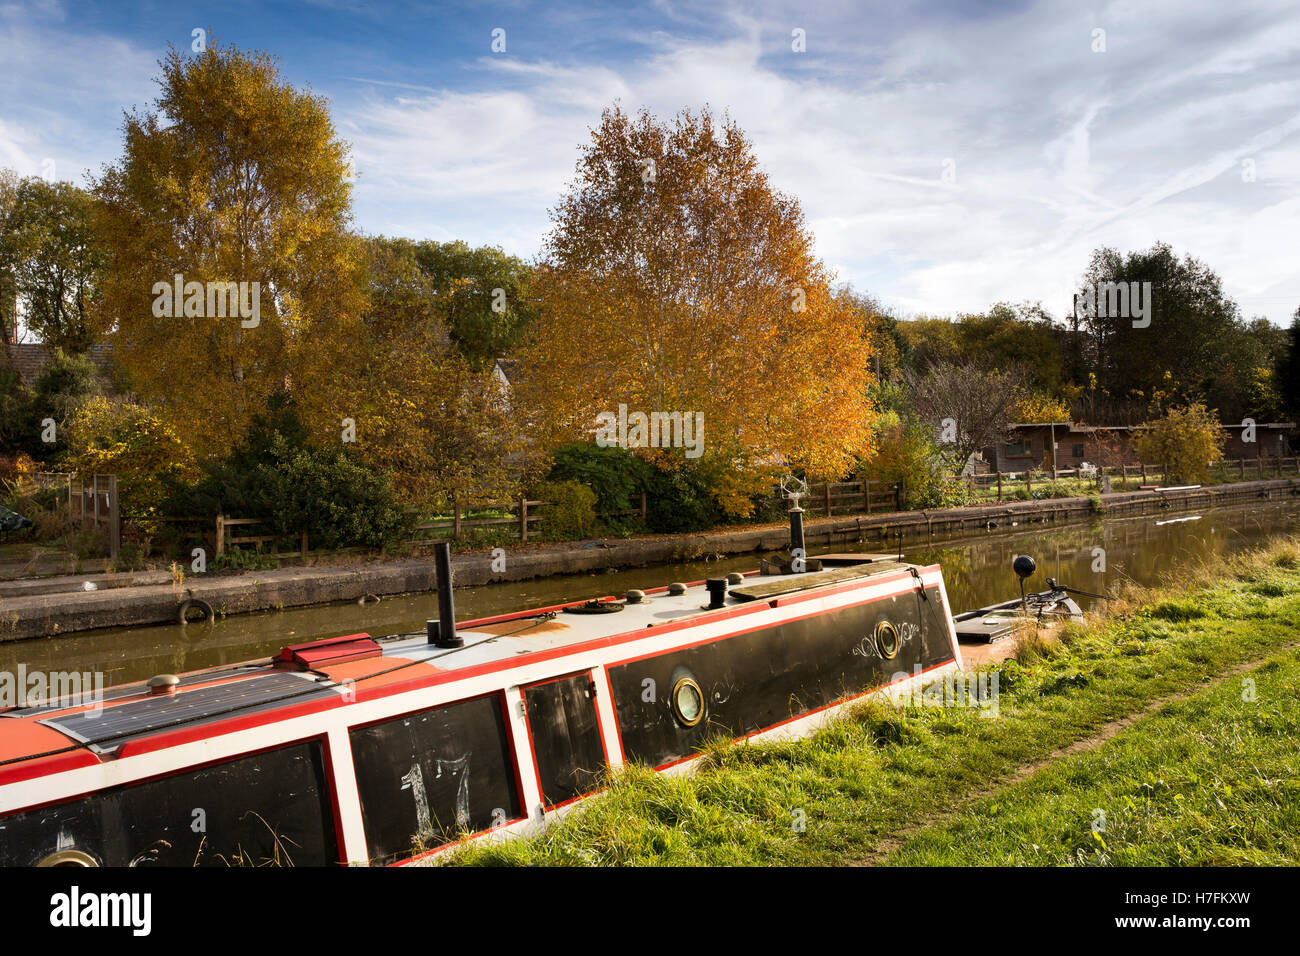 UK, England, Cheshire, Sandbach, Moston, Trent and Mersey Canal, autumn, narrowboat moored on towpath - Stock Image